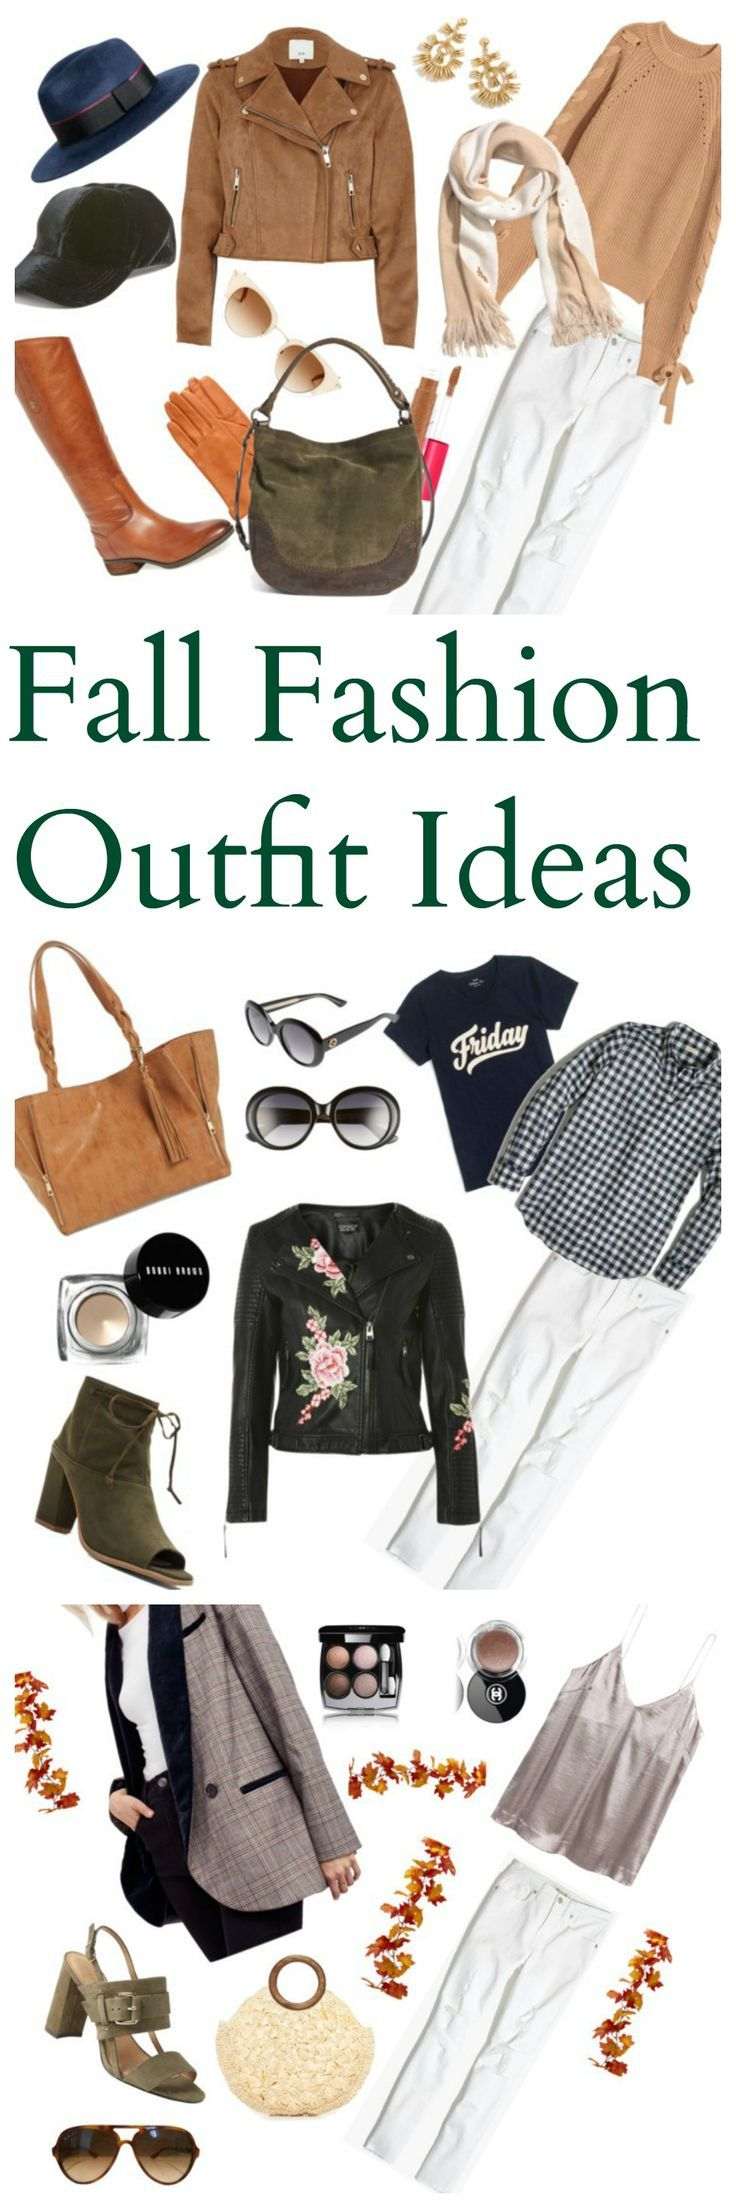 Fall Outfit Ideas to WEAR Now! Chic, Classic & Casual Wardrobe Staples to Stand Out from the Crowd! Trending Fall Fashion for Women on Budget with Plaid, Prints, Embroidery and NEW Ways to Wear White Denim!